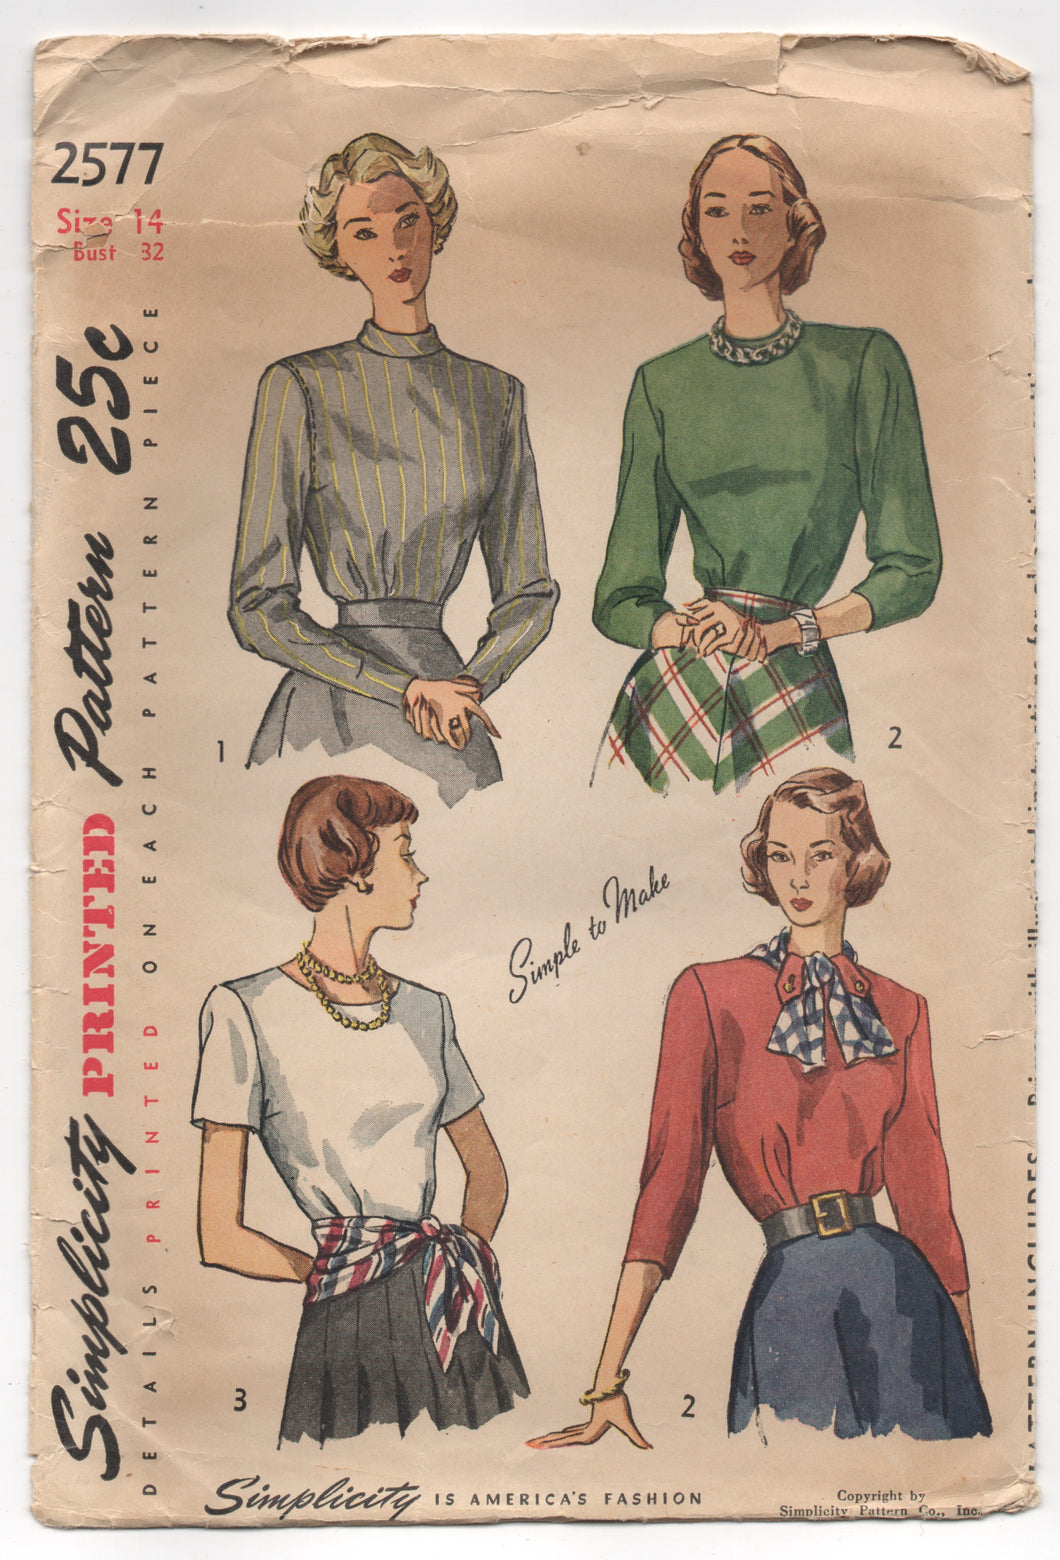 1940's Simplicity Blouse with Tab Accents, High Collar and Three Sleeve lengths - Bust 32